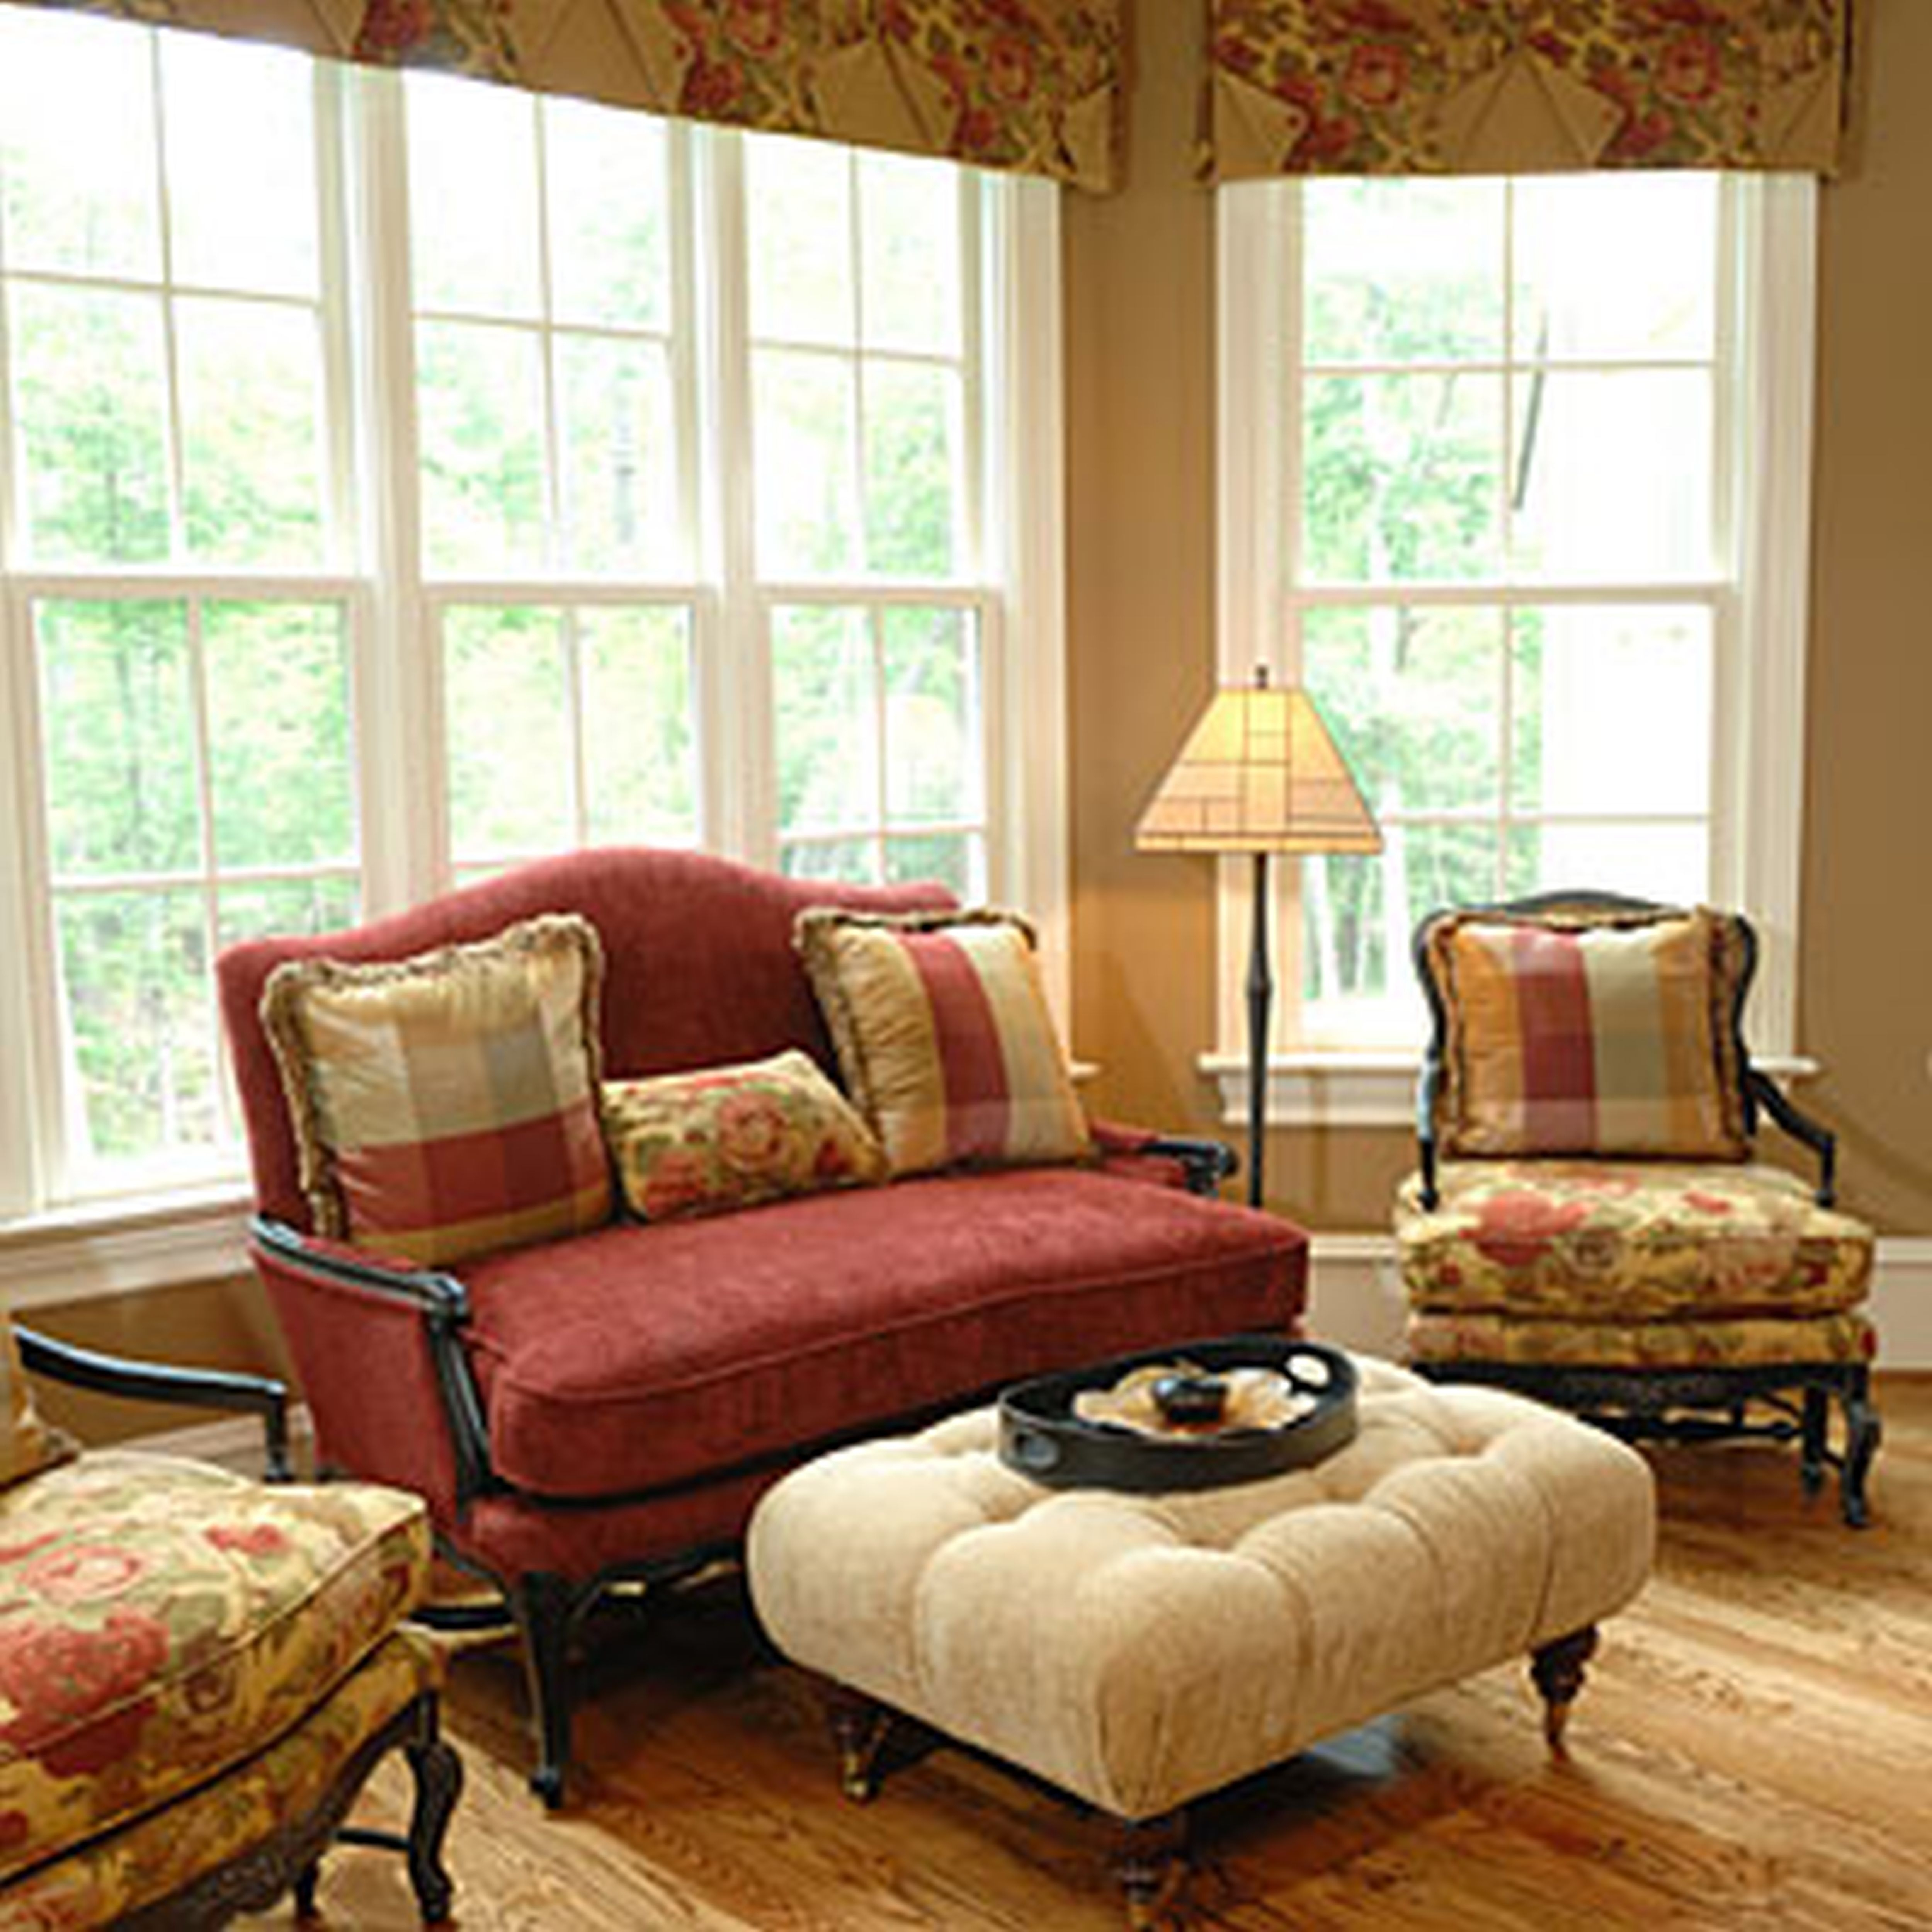 Sofa 374 Bed For Bedroom Wkzs Throughout Chintz Sofa Beds (Image 15 of 15)